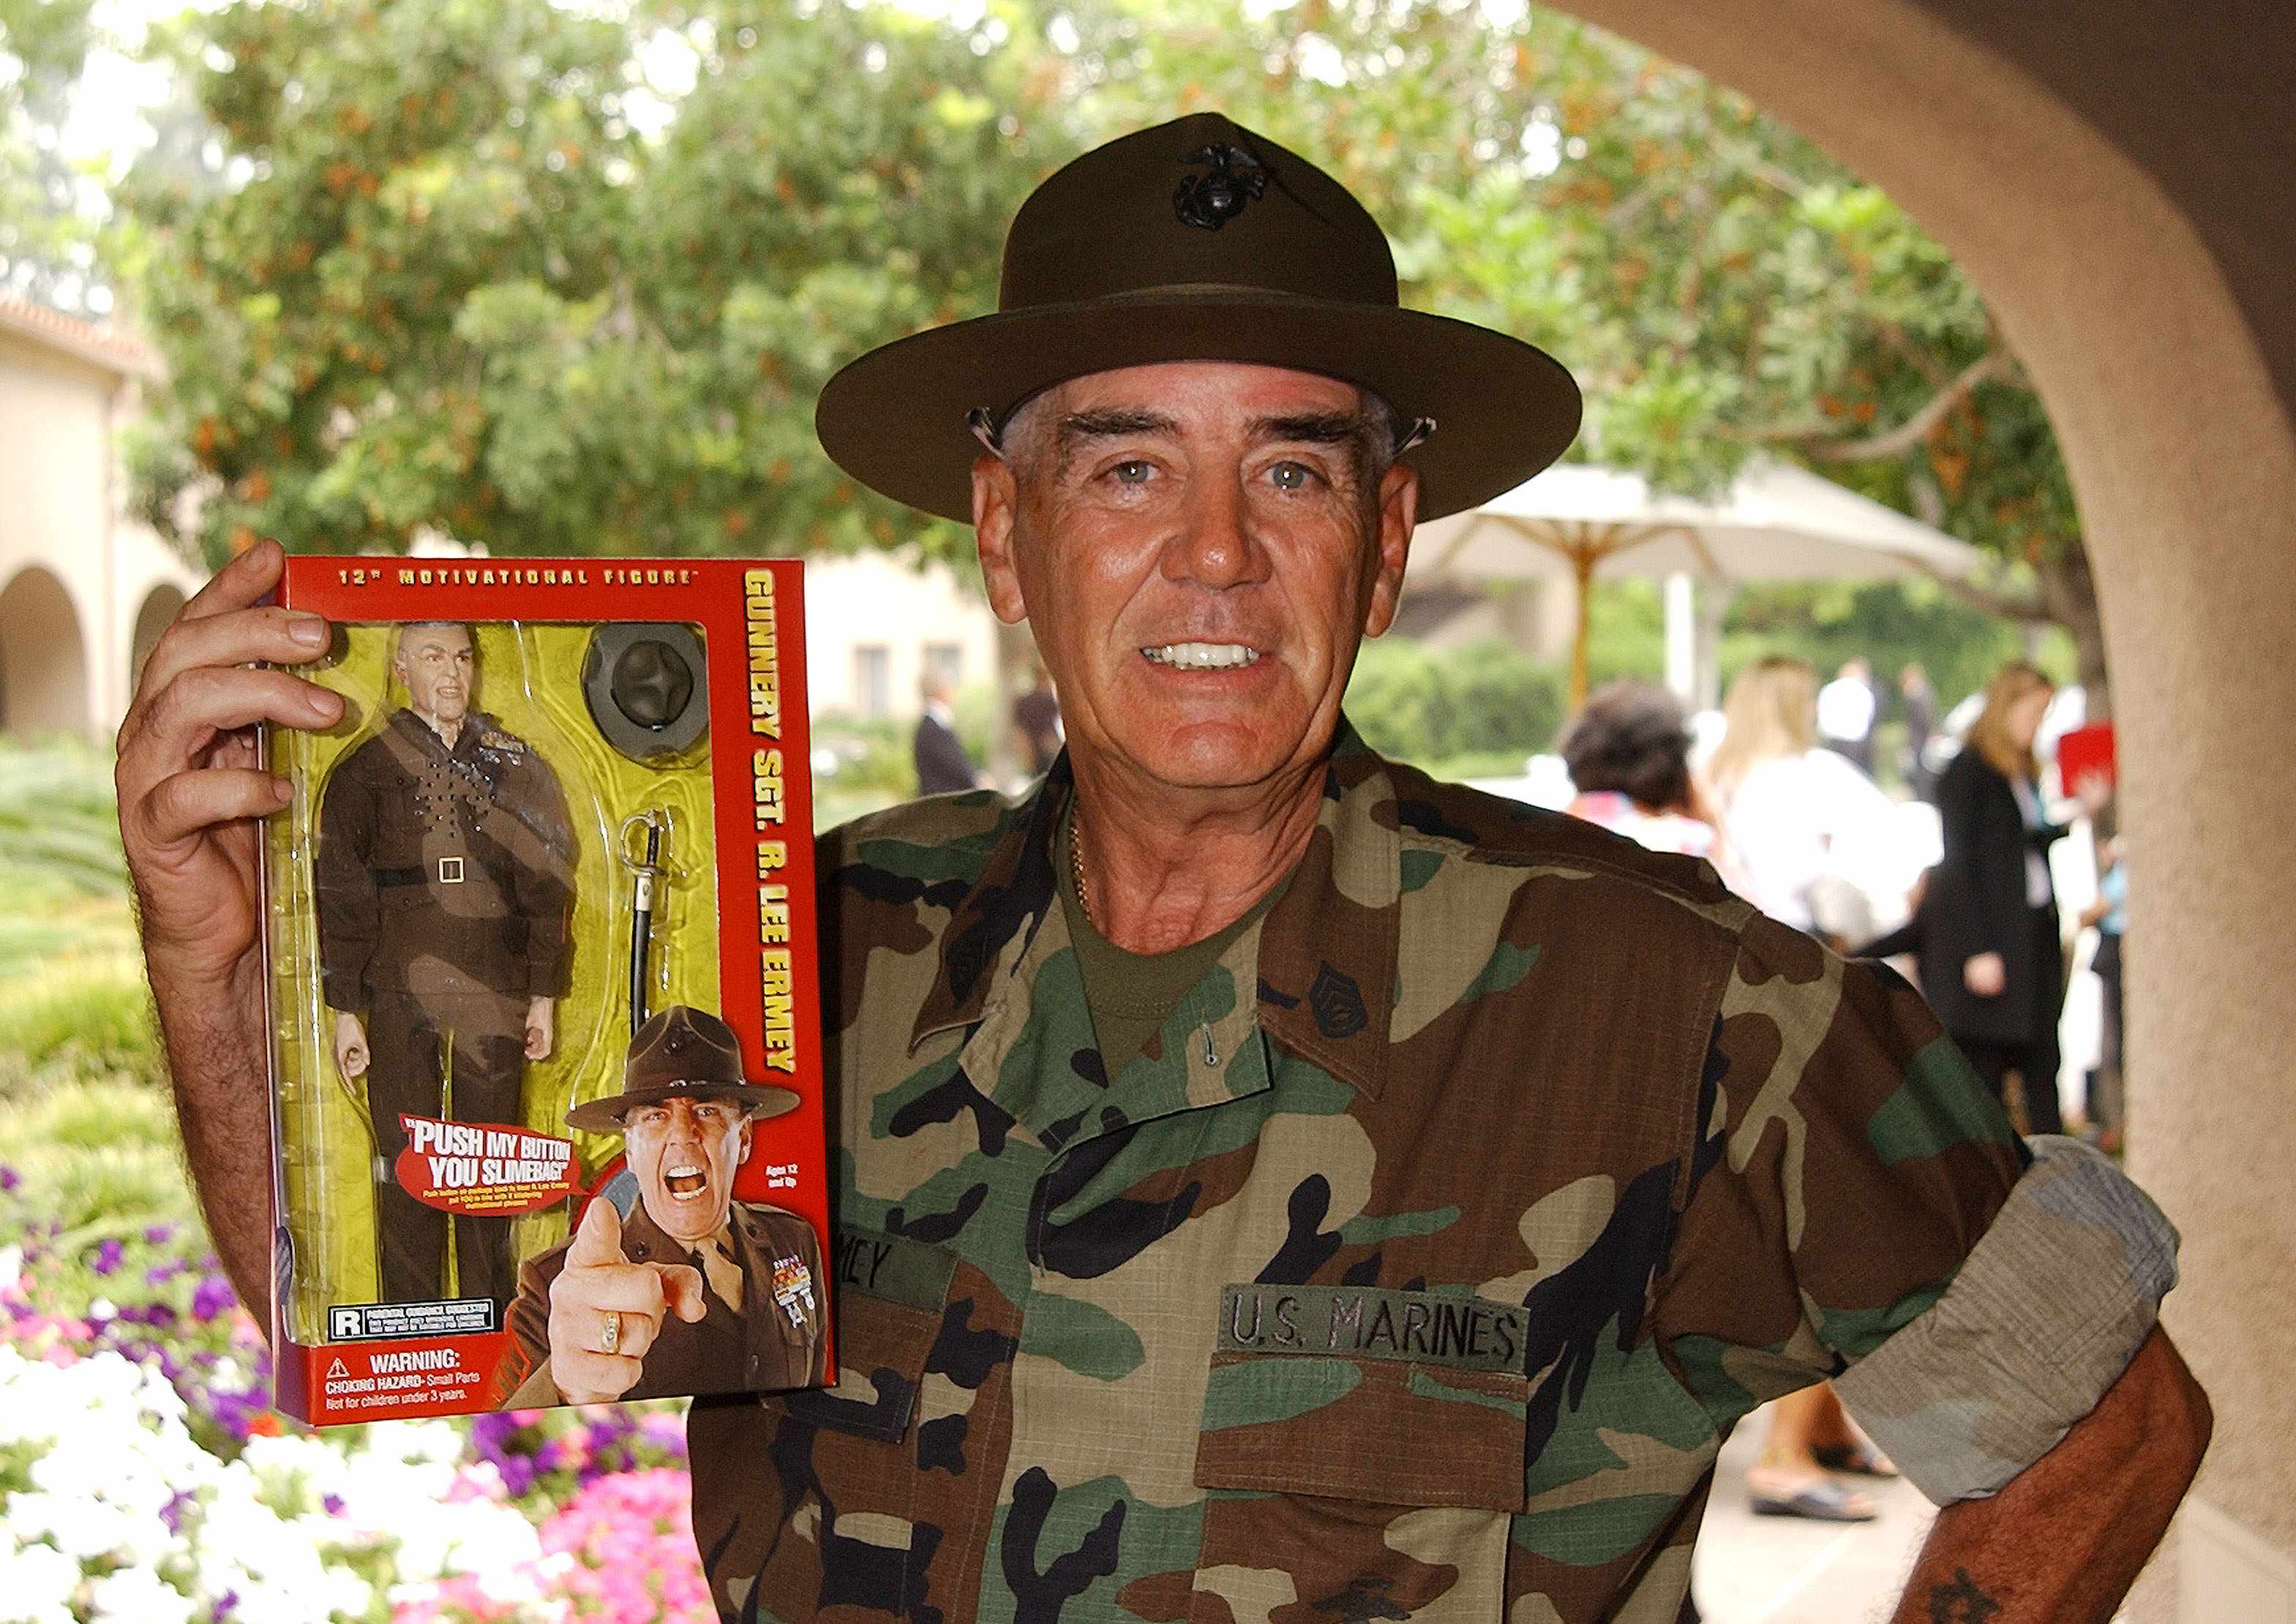 Sgt. R. Lee Ermey during National Cable & Telecommunications Association Press Tour at The Ritz Carlton Pasadena Hotel in Pasadena, California, United States. (Photo by Gregg DeGuire/WireImage)